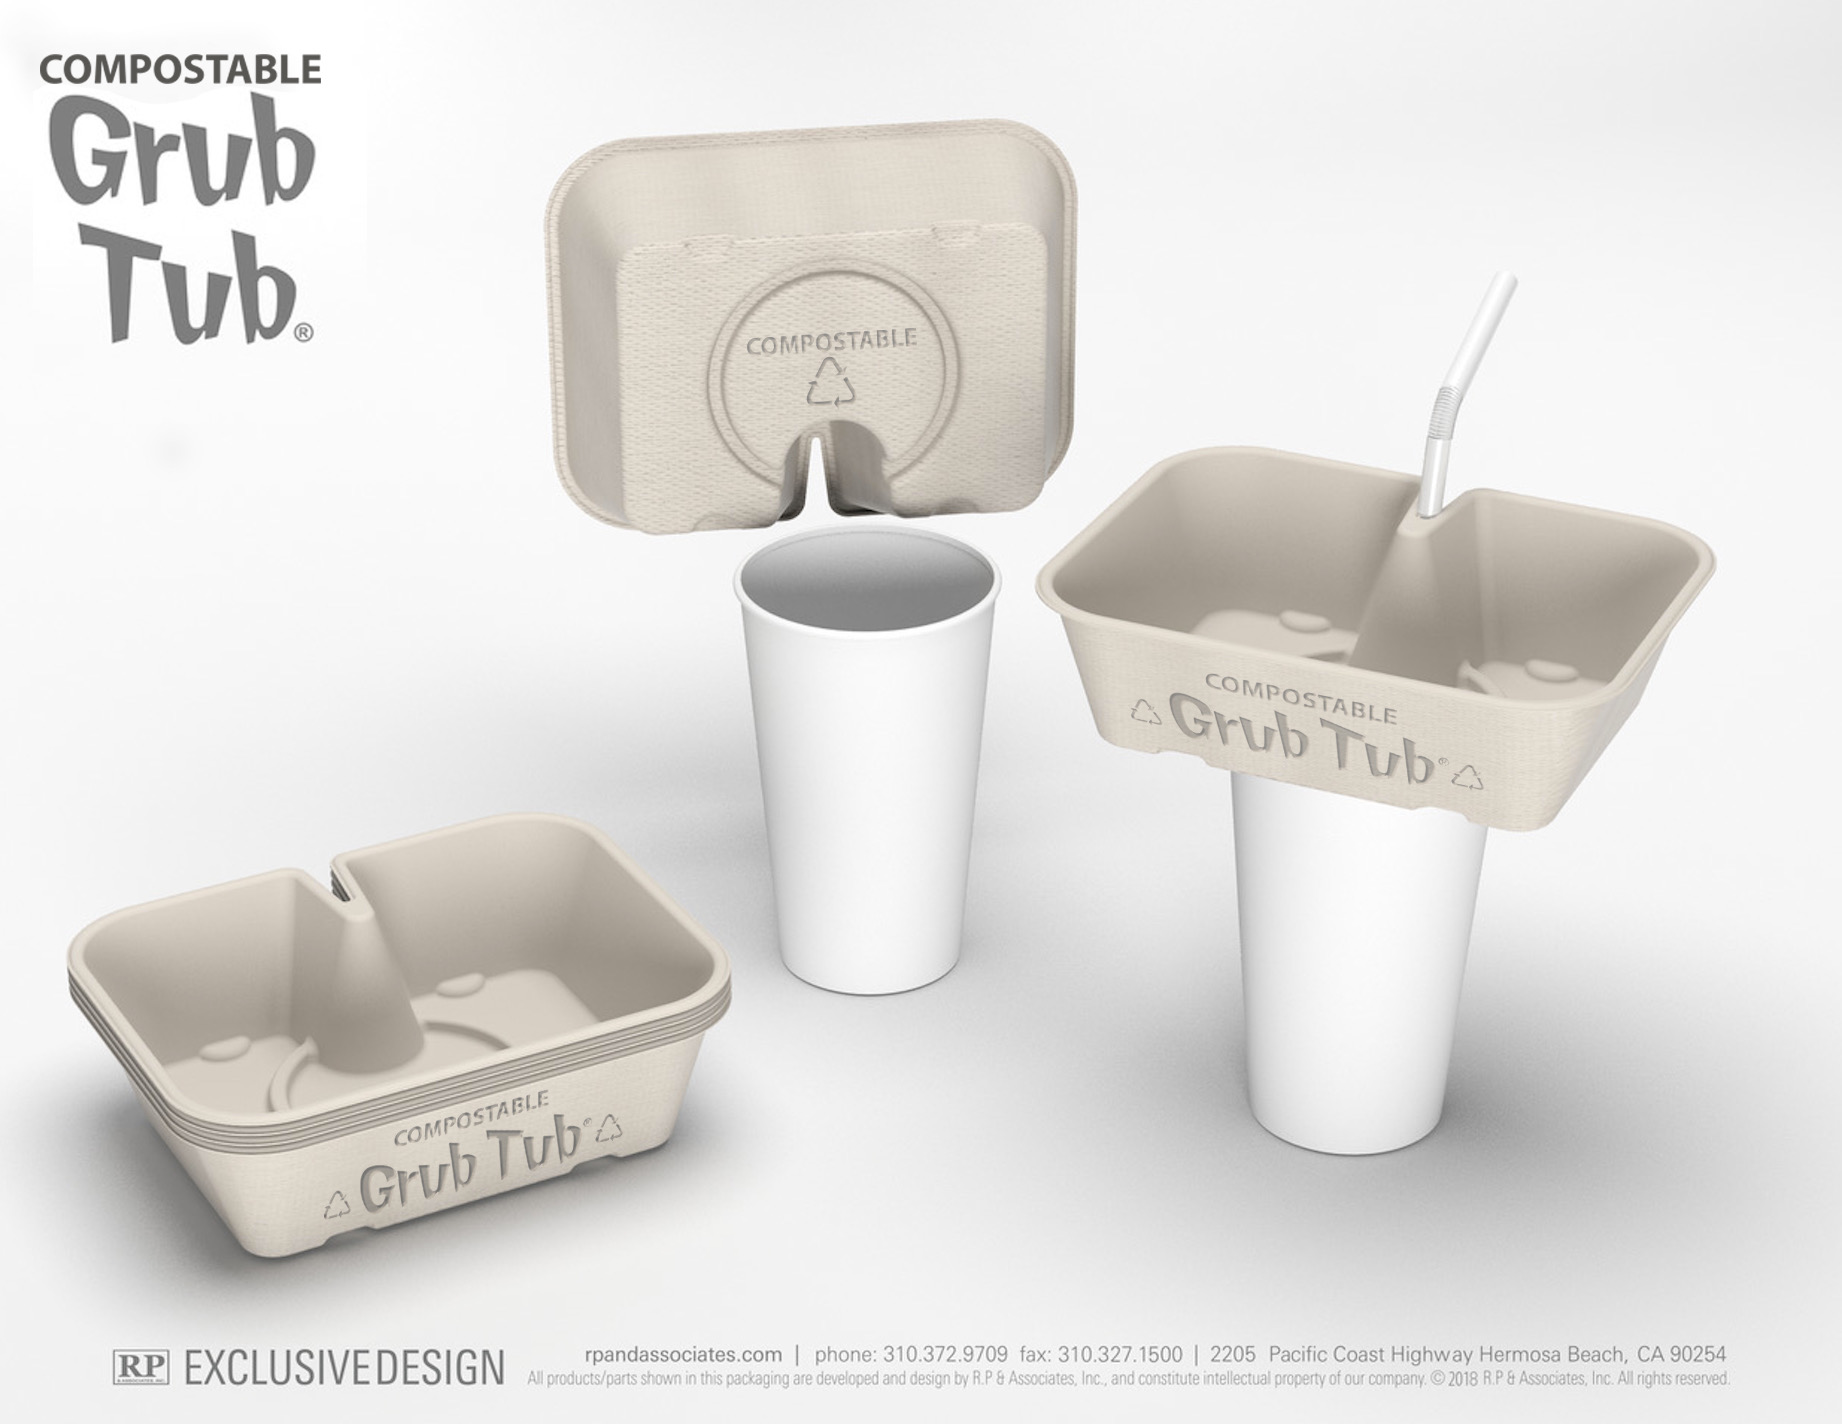 compostable grub tub